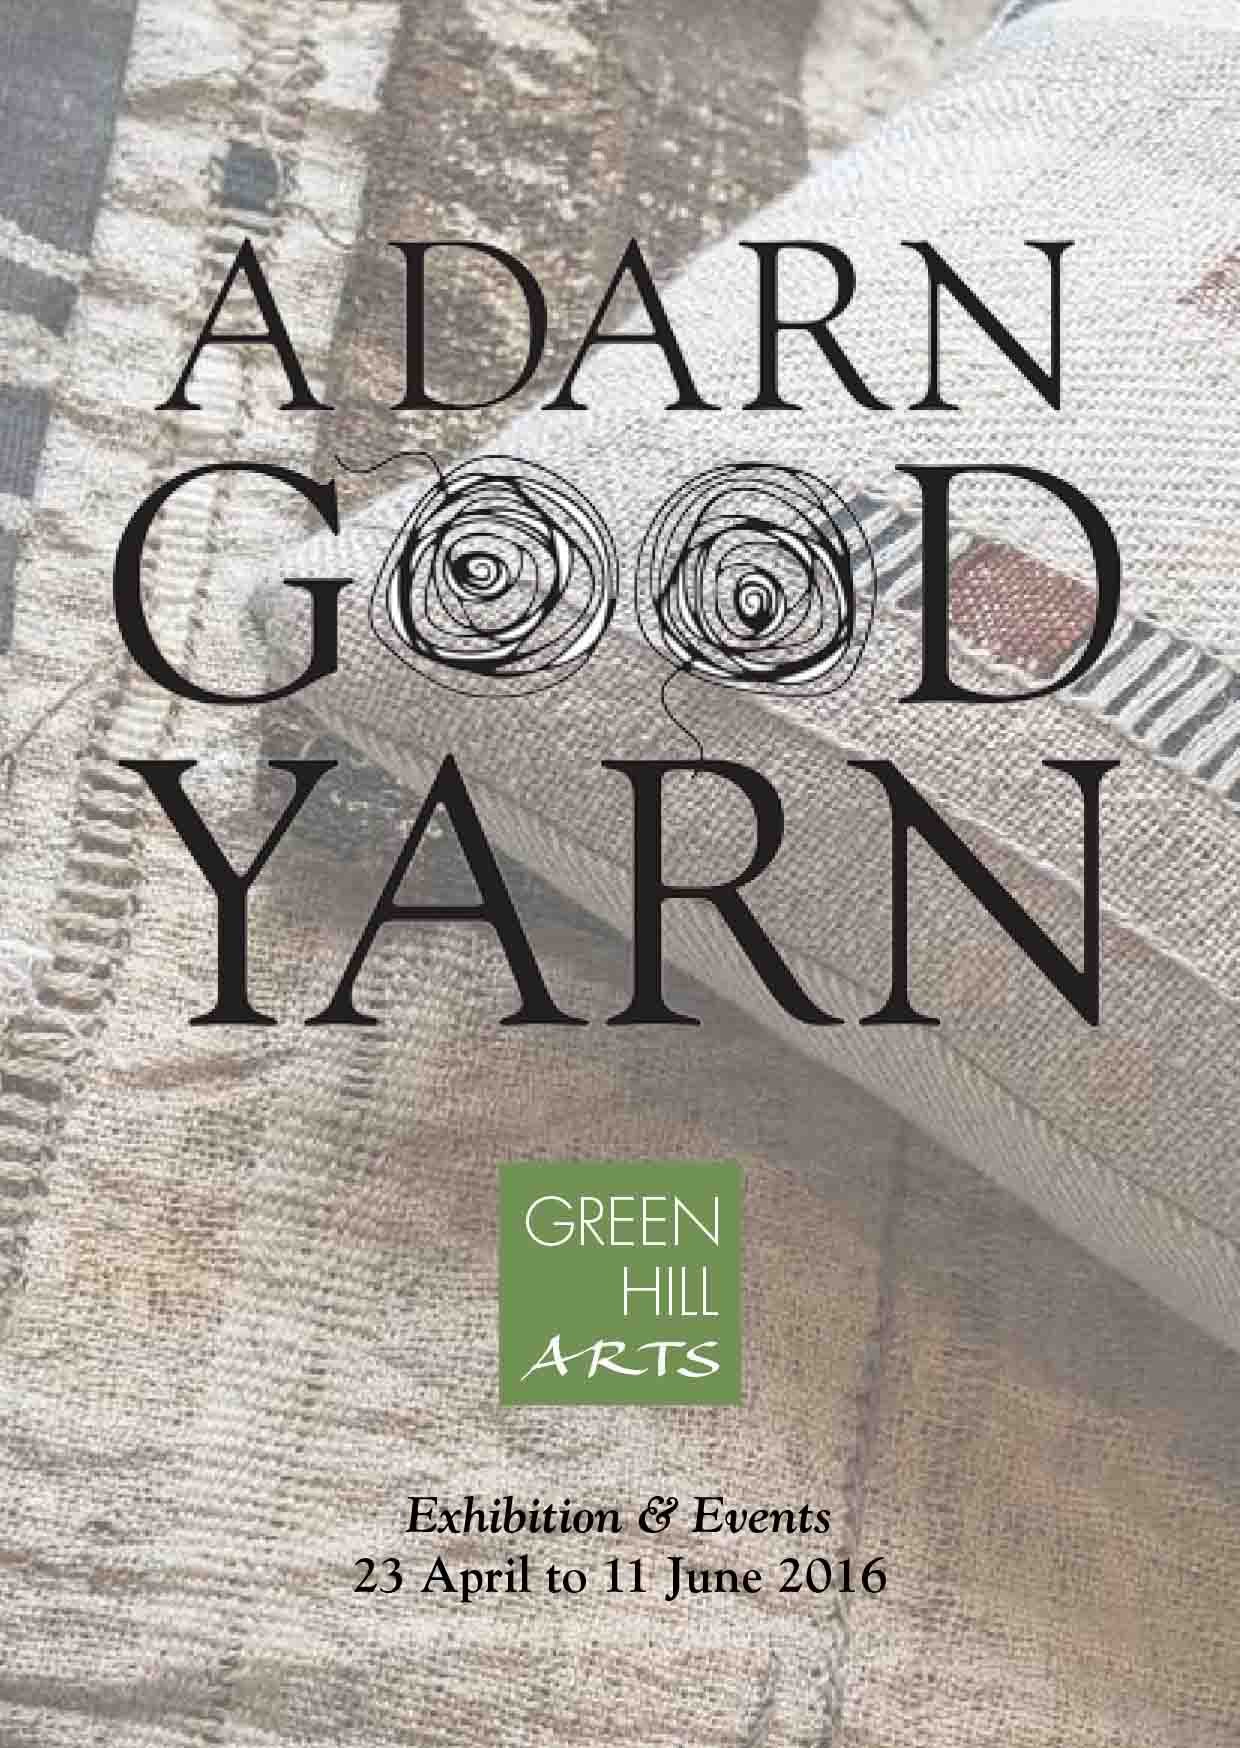 Darn good yarn postcard low res version.pdf 1